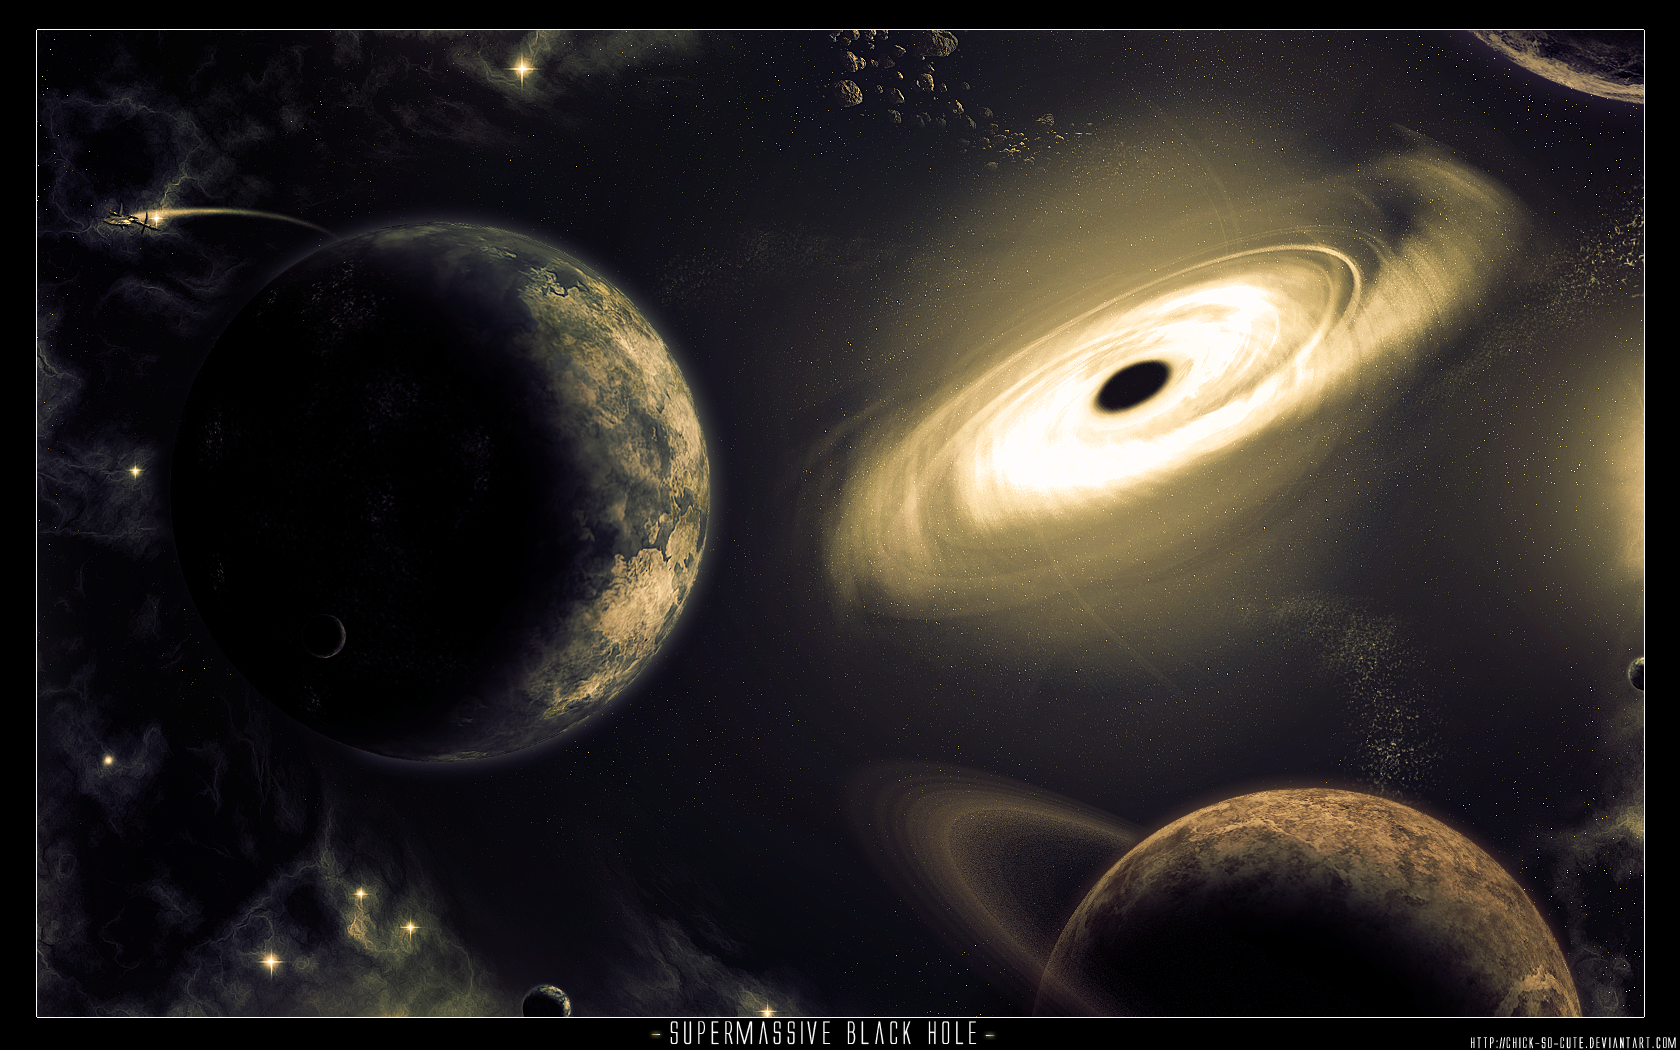 Black Hole - Space Art by Chick-so-cute on DeviantArt